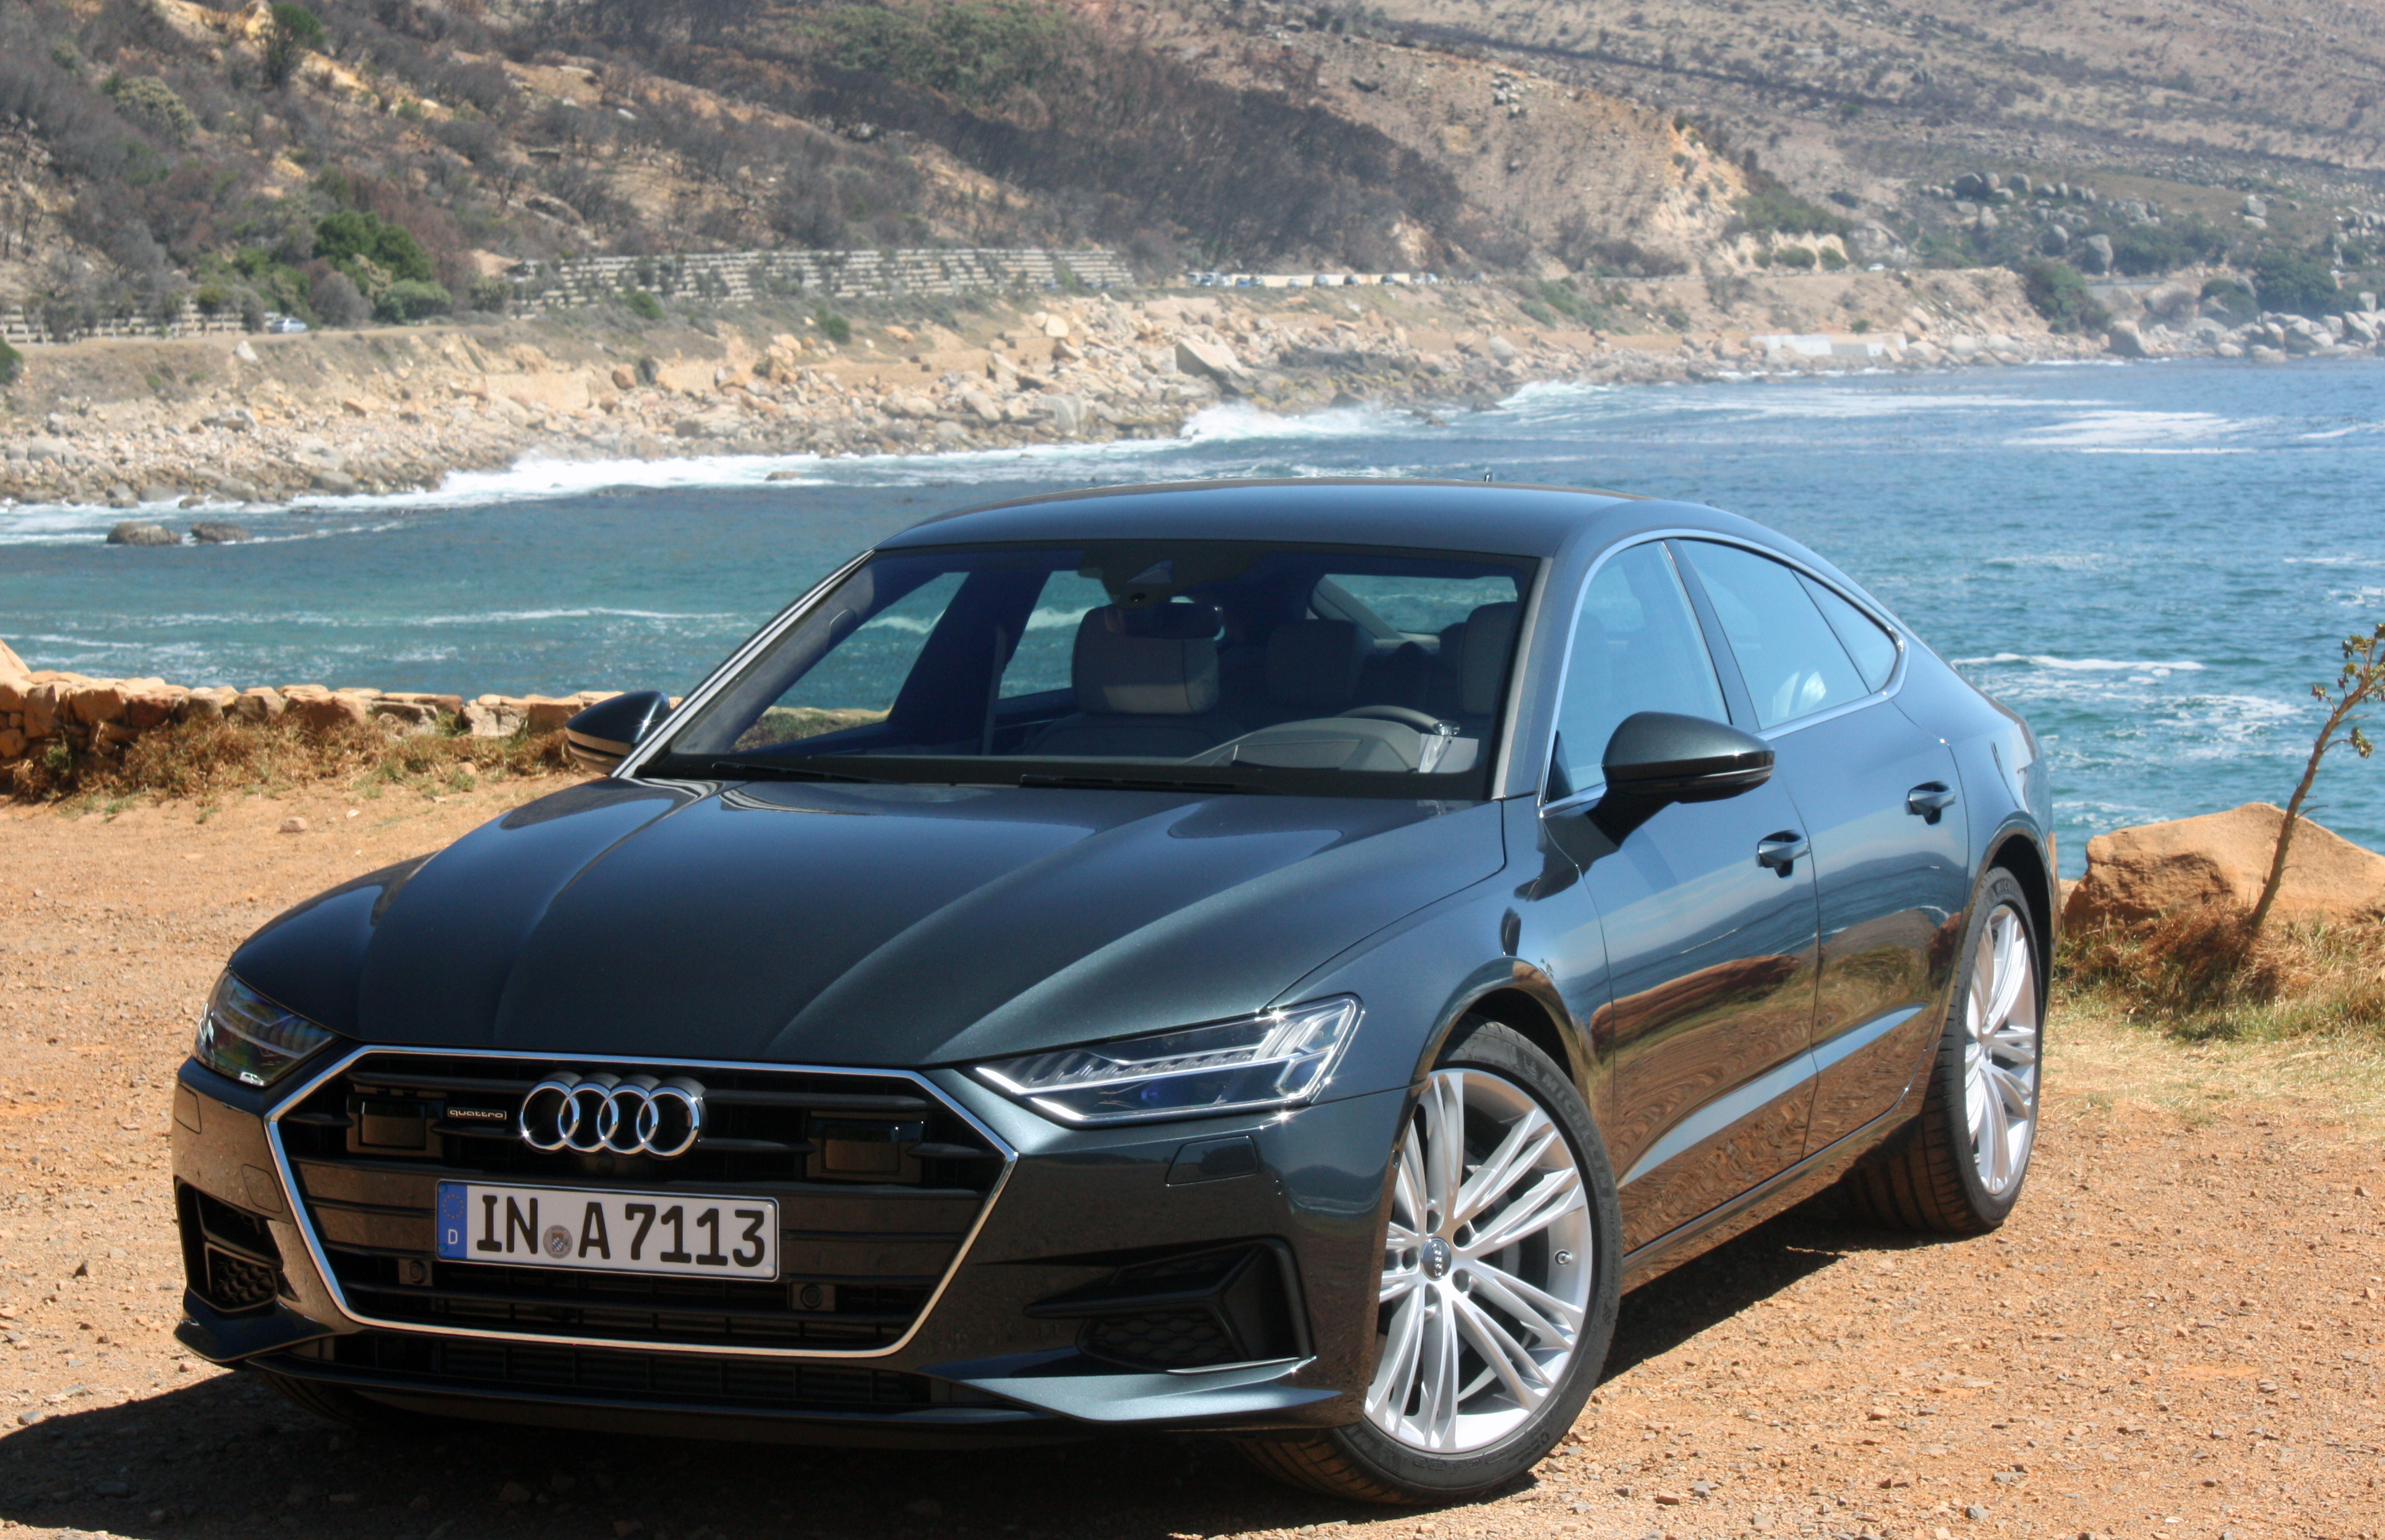 amazing chette used audi condition automobiles sale fr at for